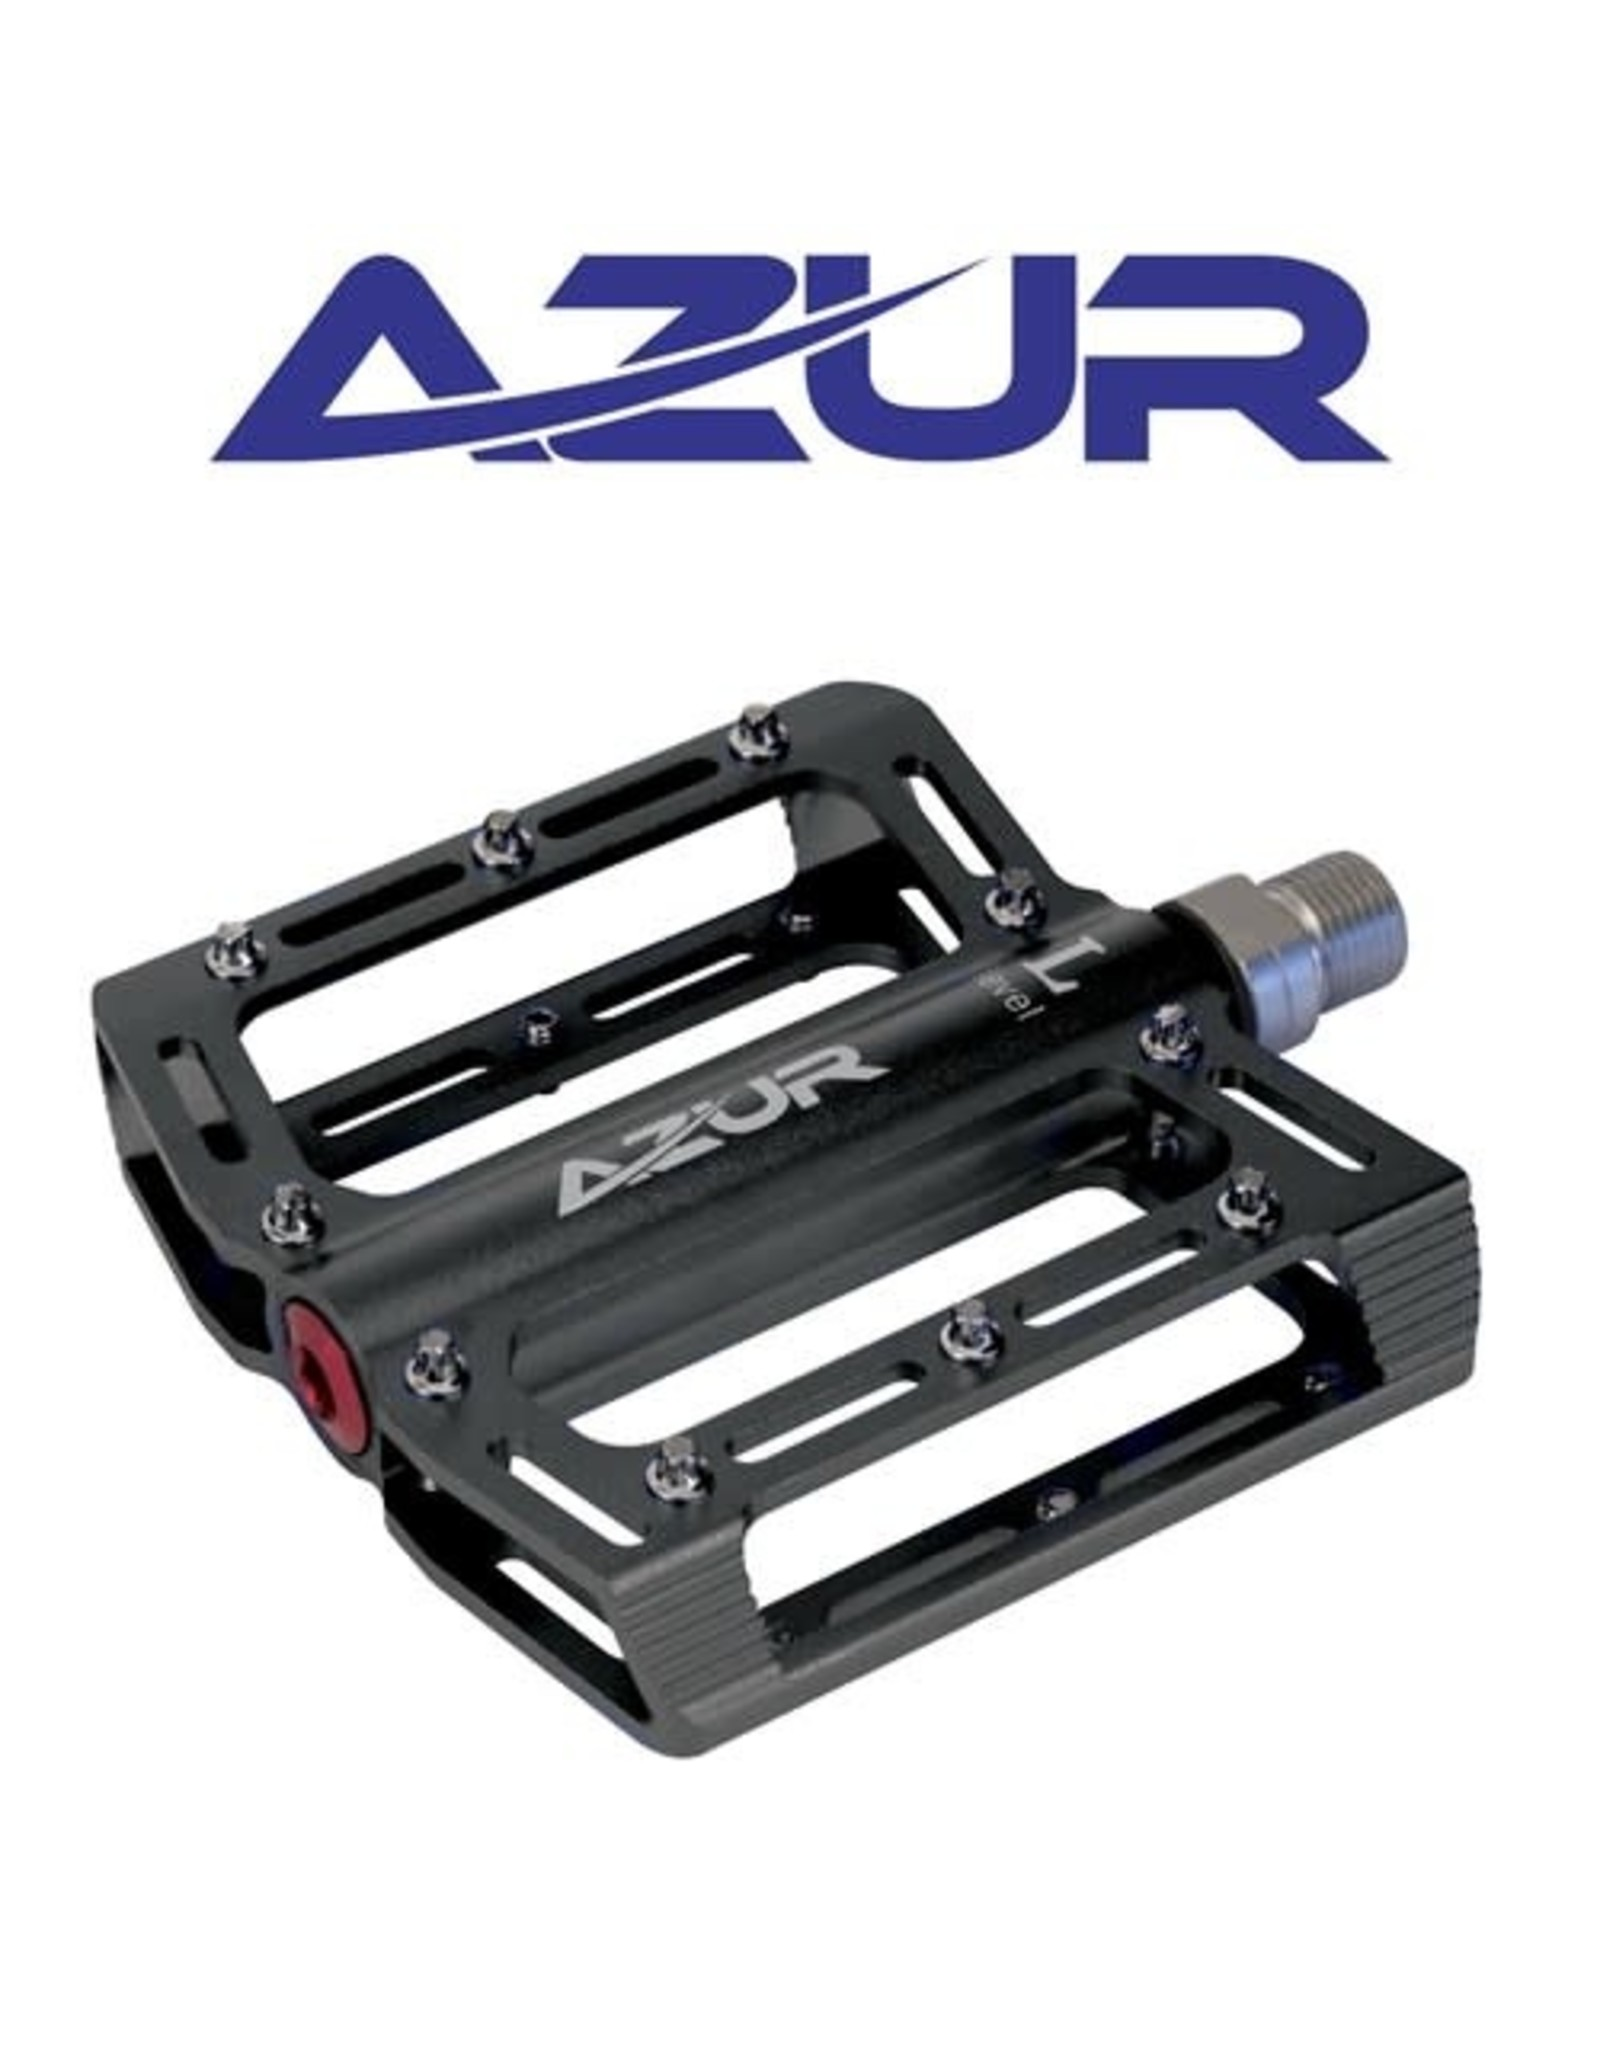 "AZUR PEDALS AZUR STOUT FLAT 9/16"" SEALED BEARING"